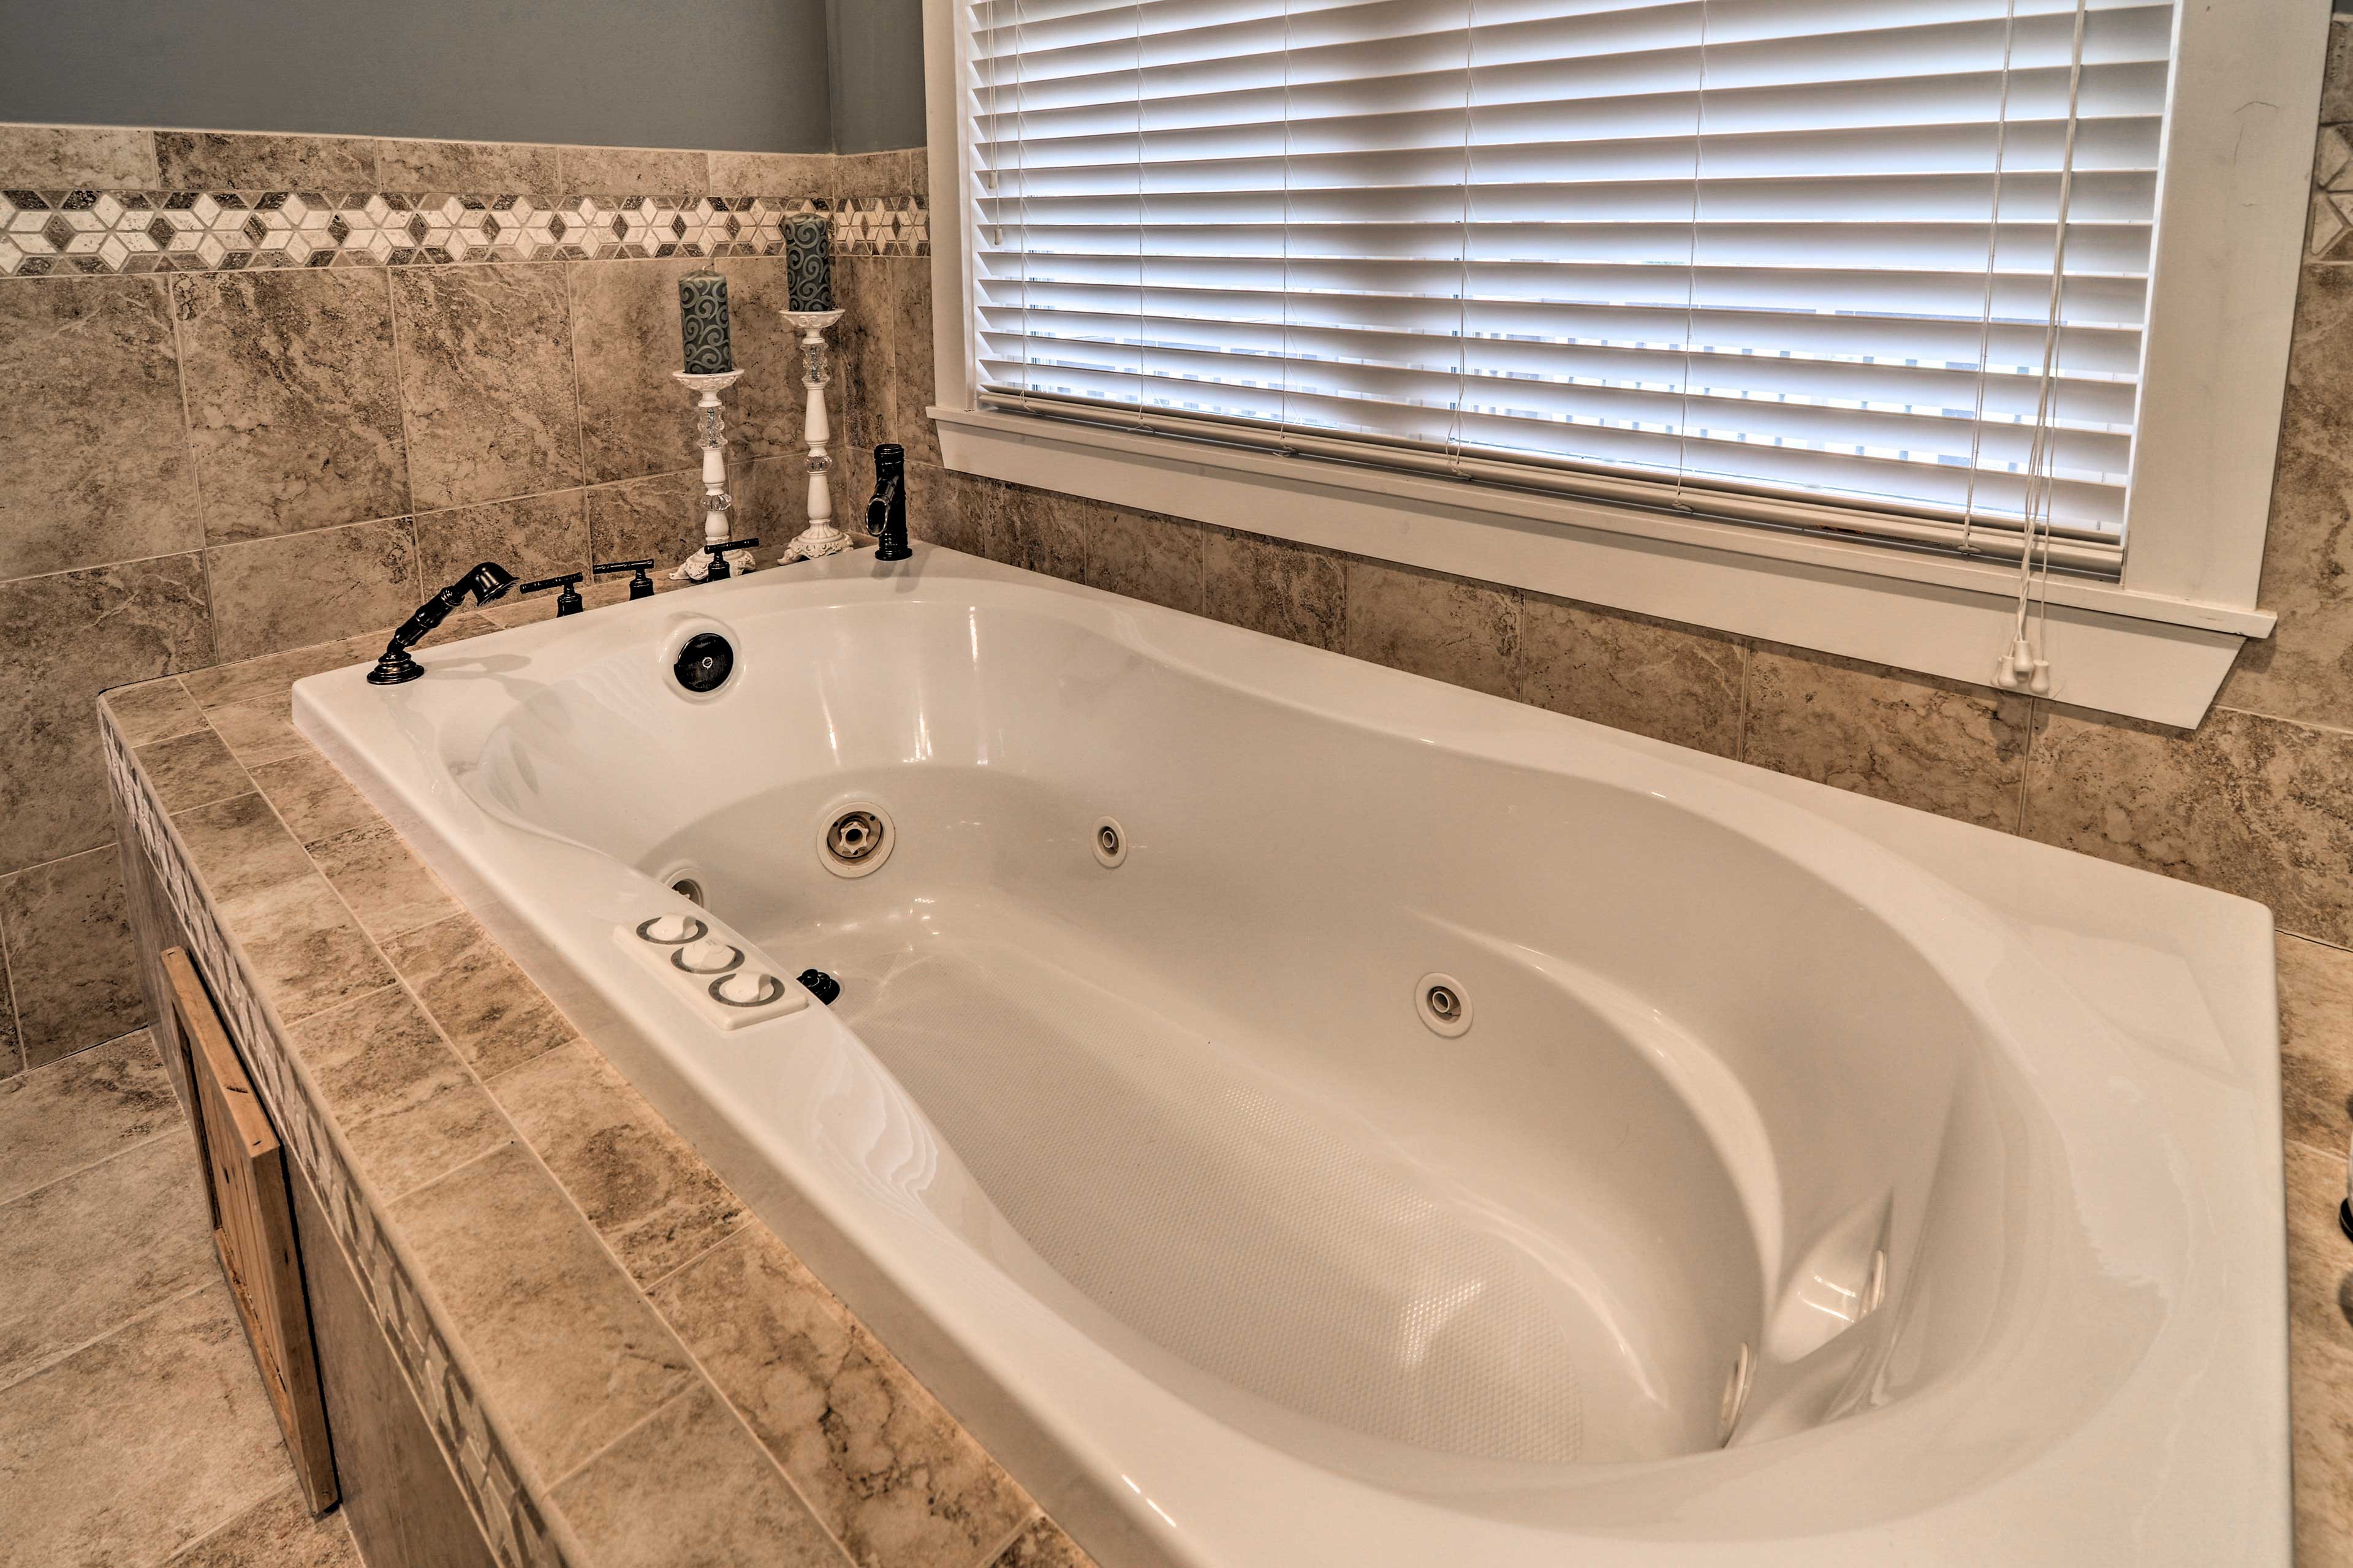 End your adventure-filled days with a soak in the jetted tub.